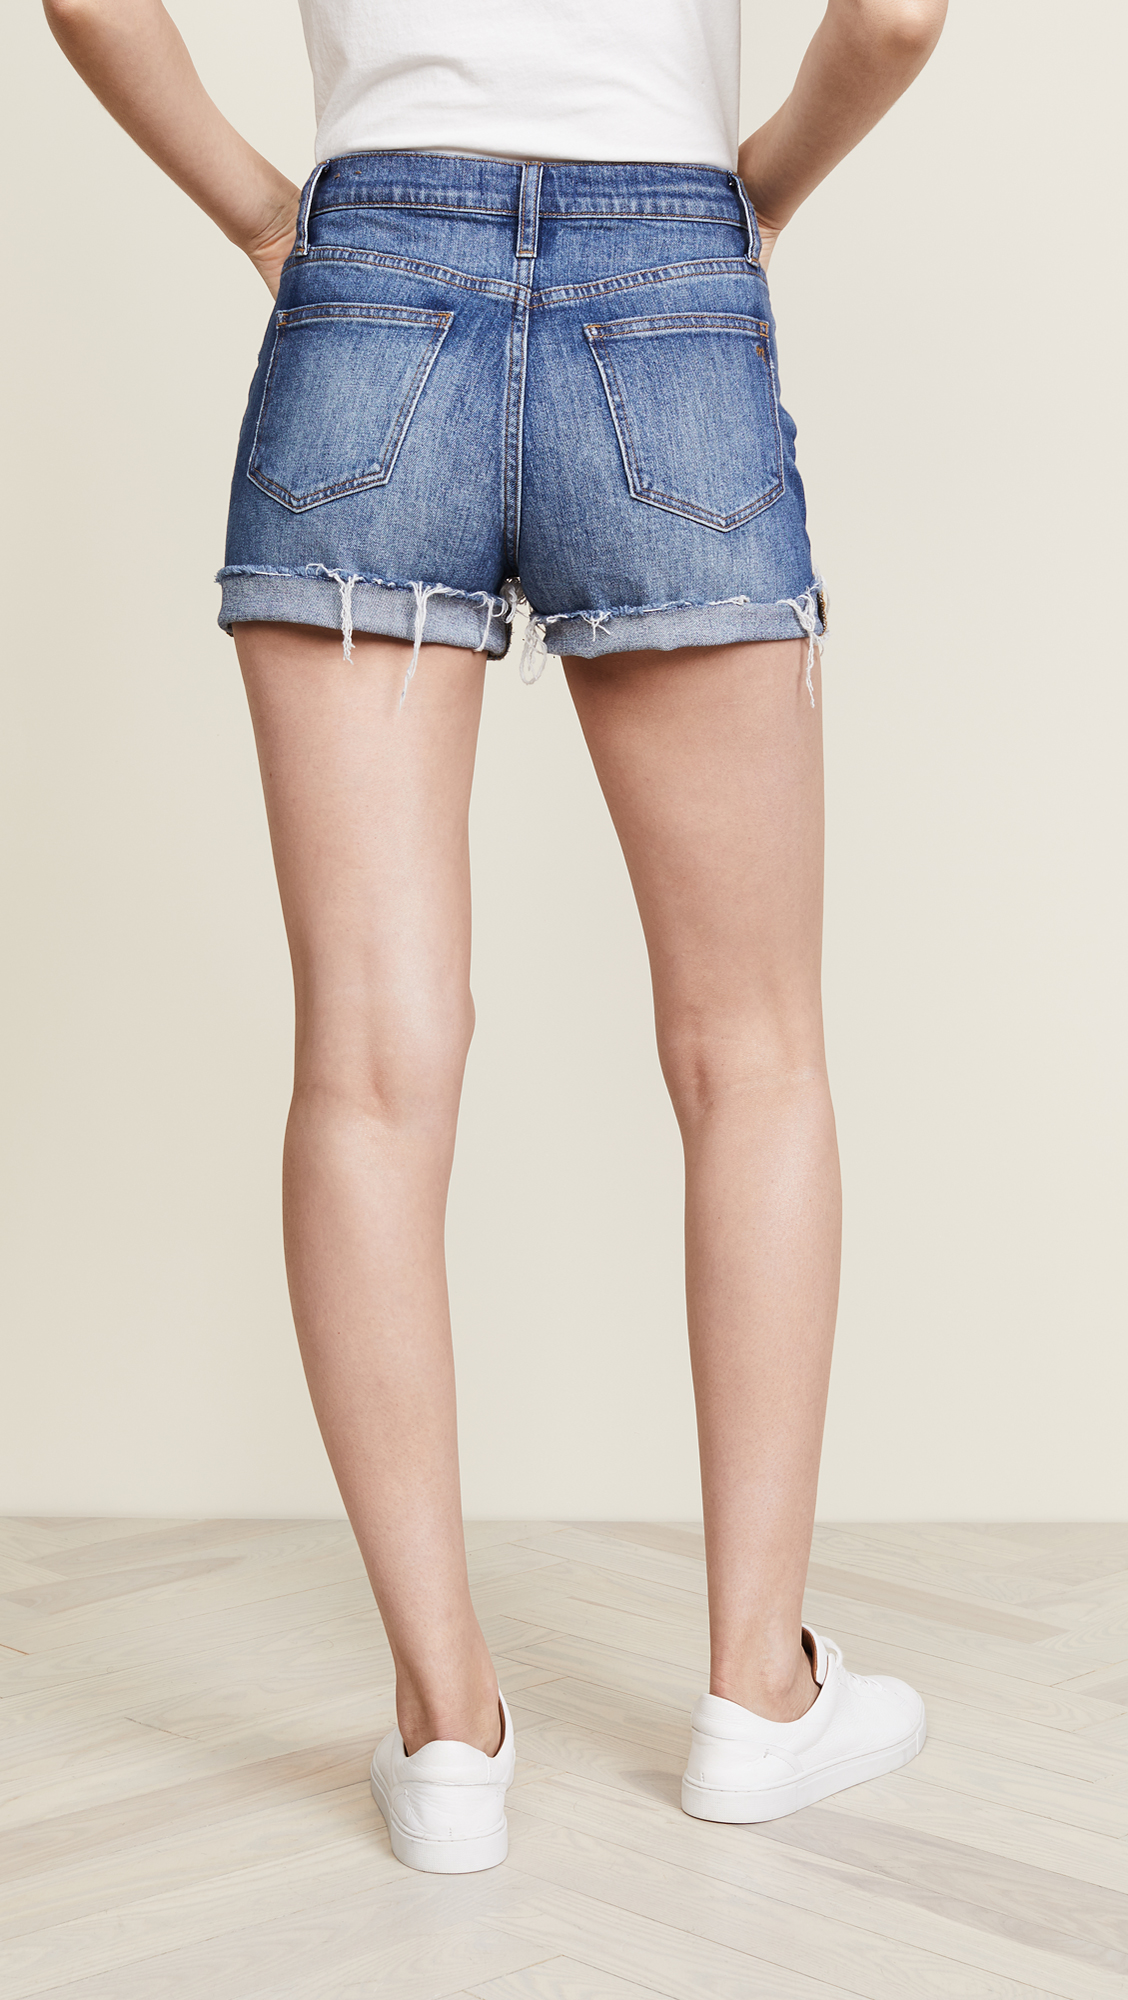 440749b221a Madewell High Rise Boy Shorts